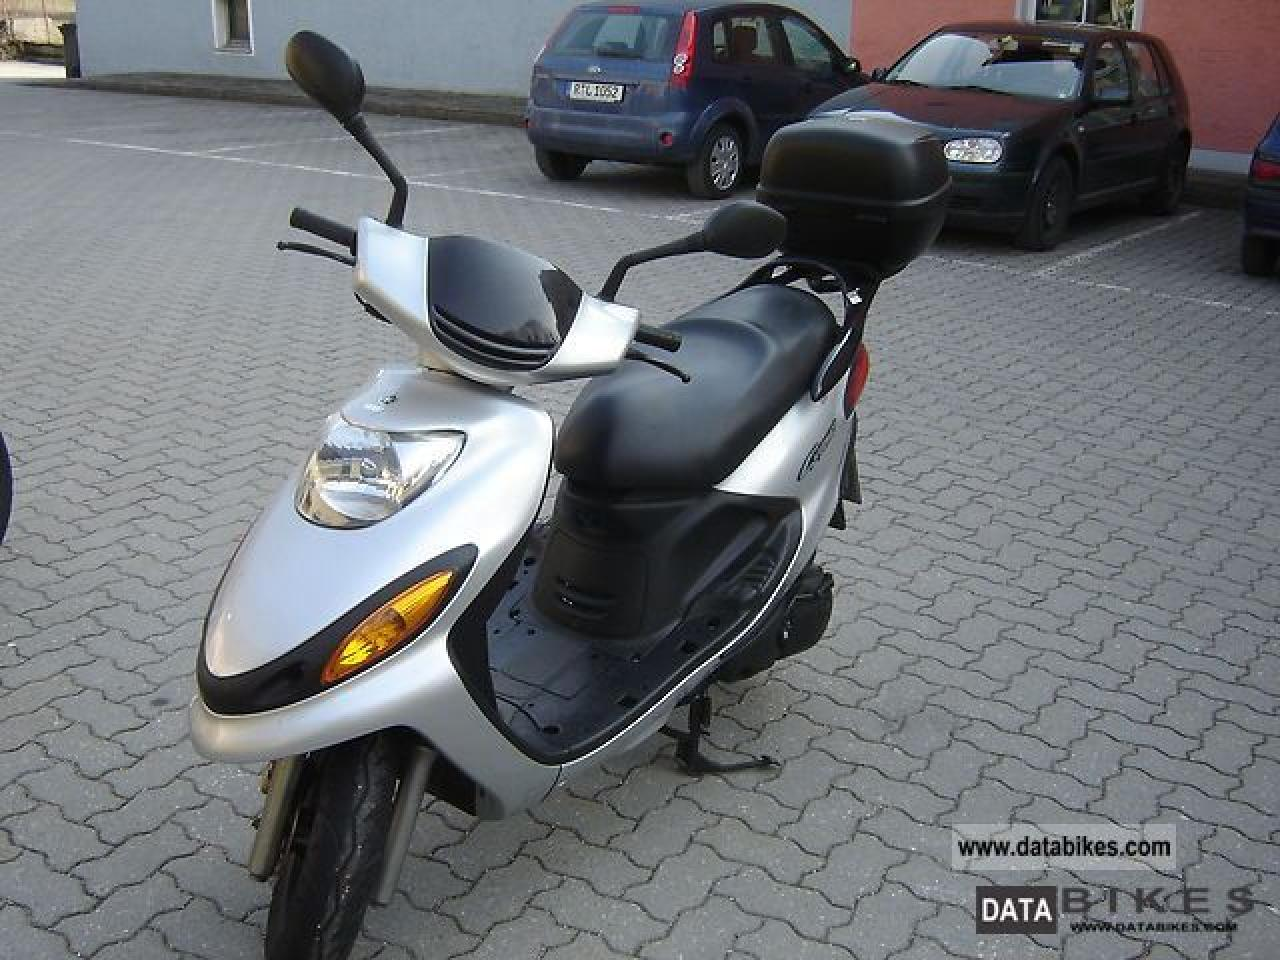 Review of Yamaha XC 125 TR Cygnus R 1997: pictures, live